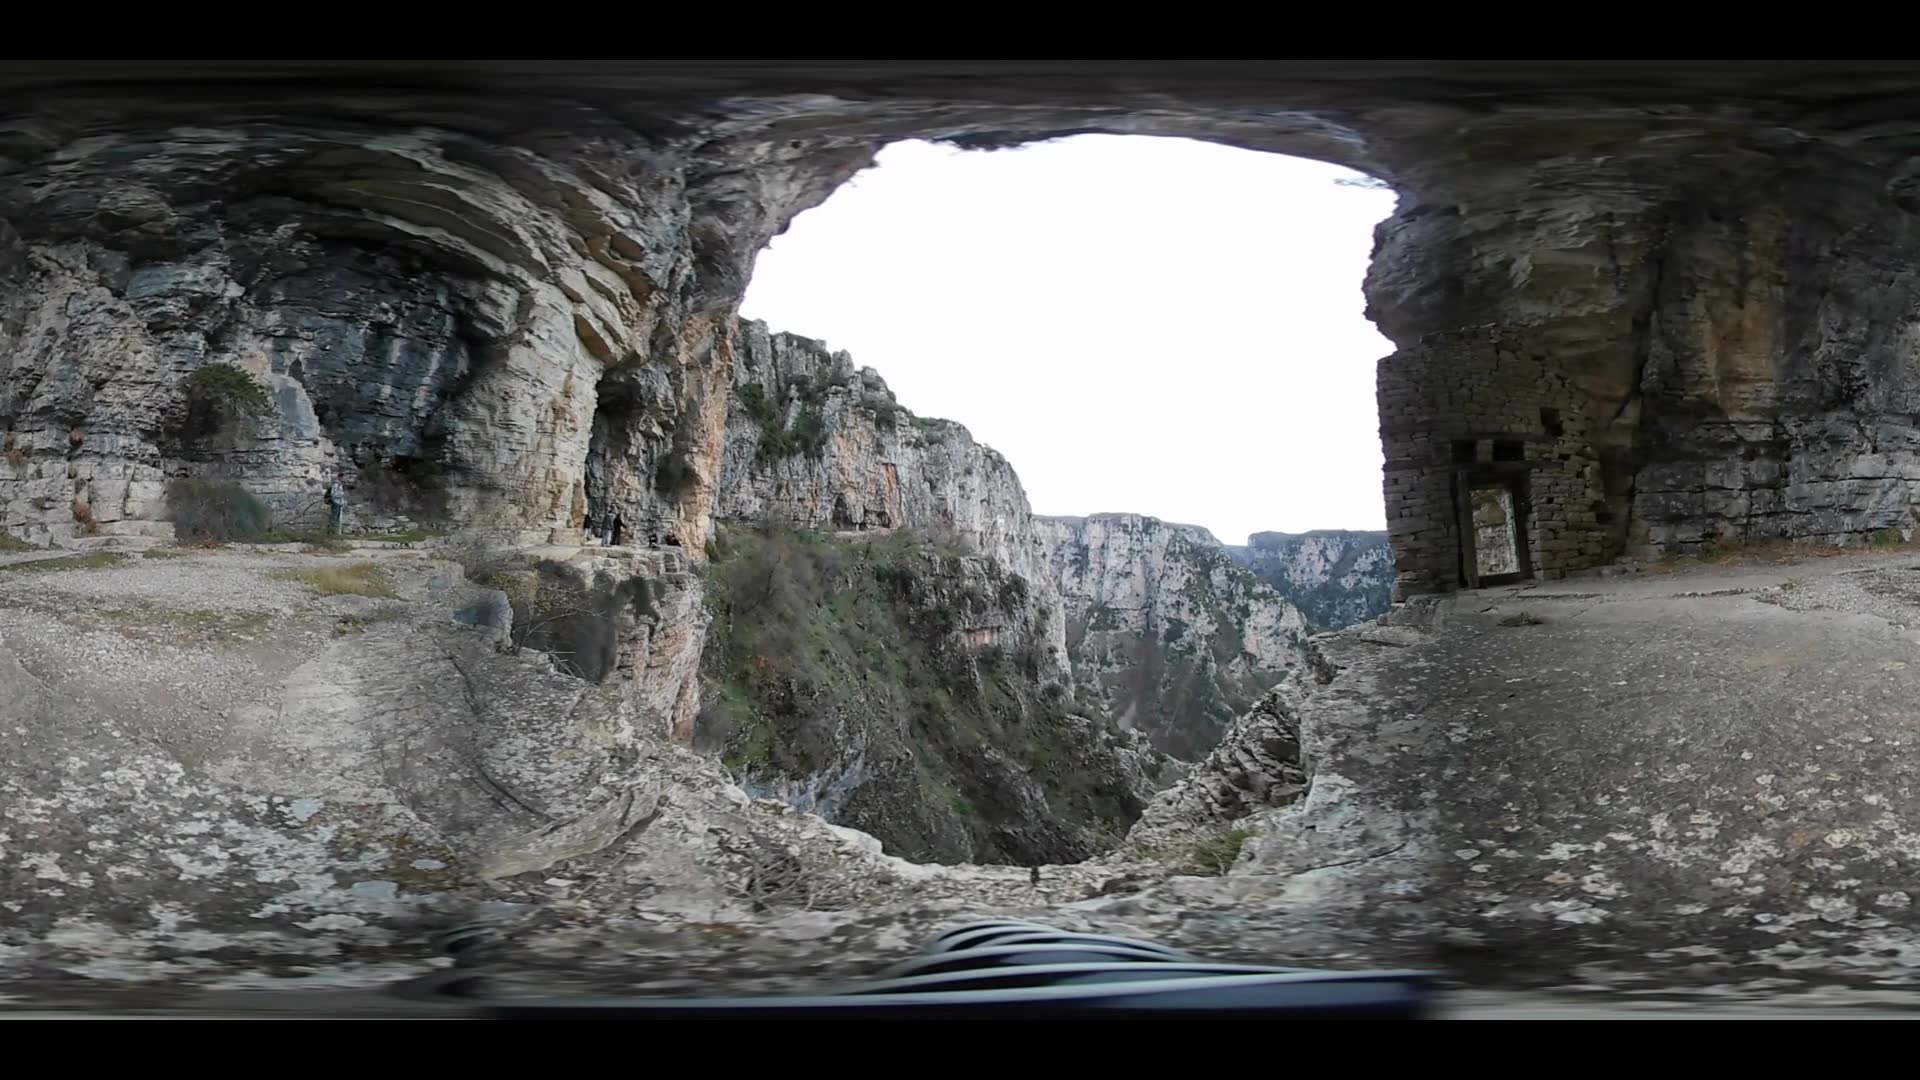 Virtual Reality 360 view from The Vikos Gorge in the Pindus Mountains of northern Greece